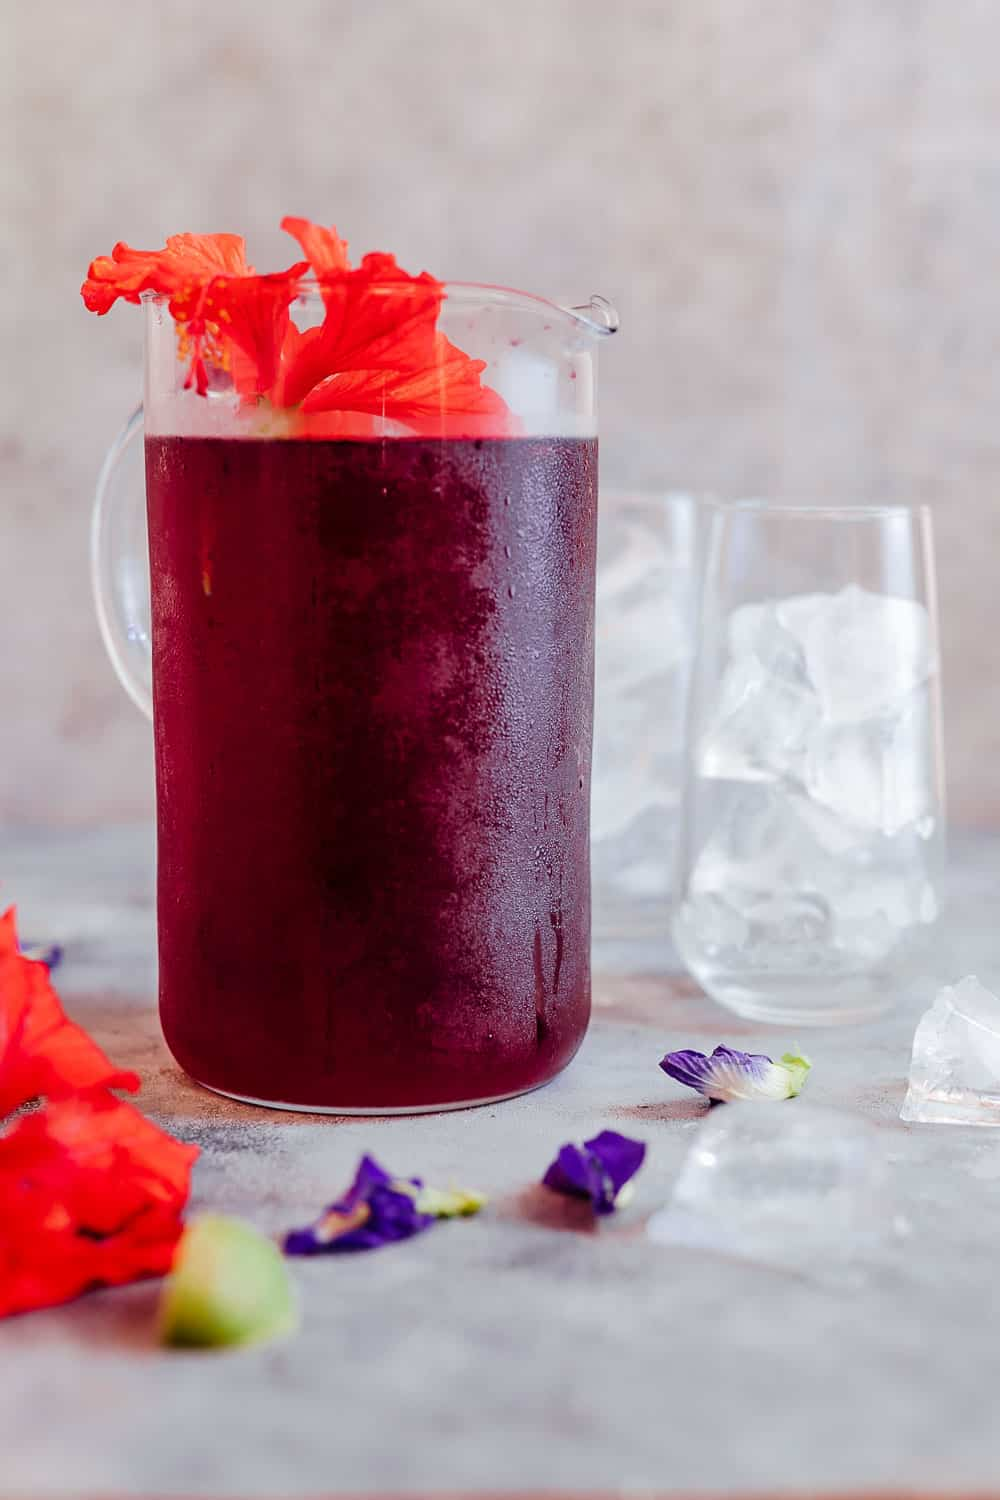 Iced Hibiscus Tea served in a large jug with fresh hibuscus flowers